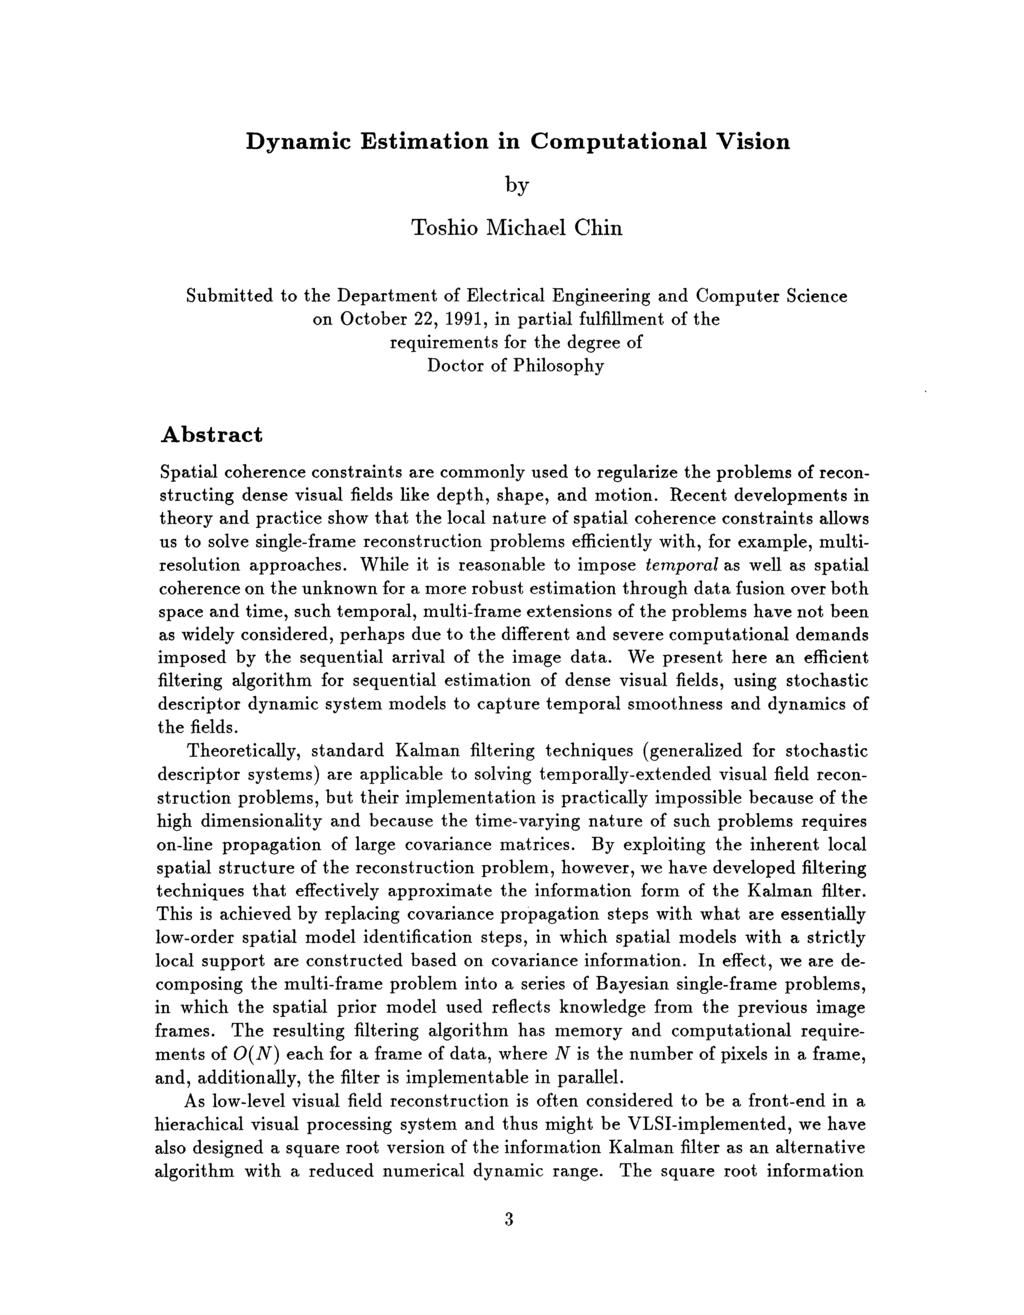 Dynamic Estimation in Computational Vision by Toshio Michael Chin Submitted to the Department of Electrical Engineering and Computer Science on October 22, 19911 in partial fulfillment of the